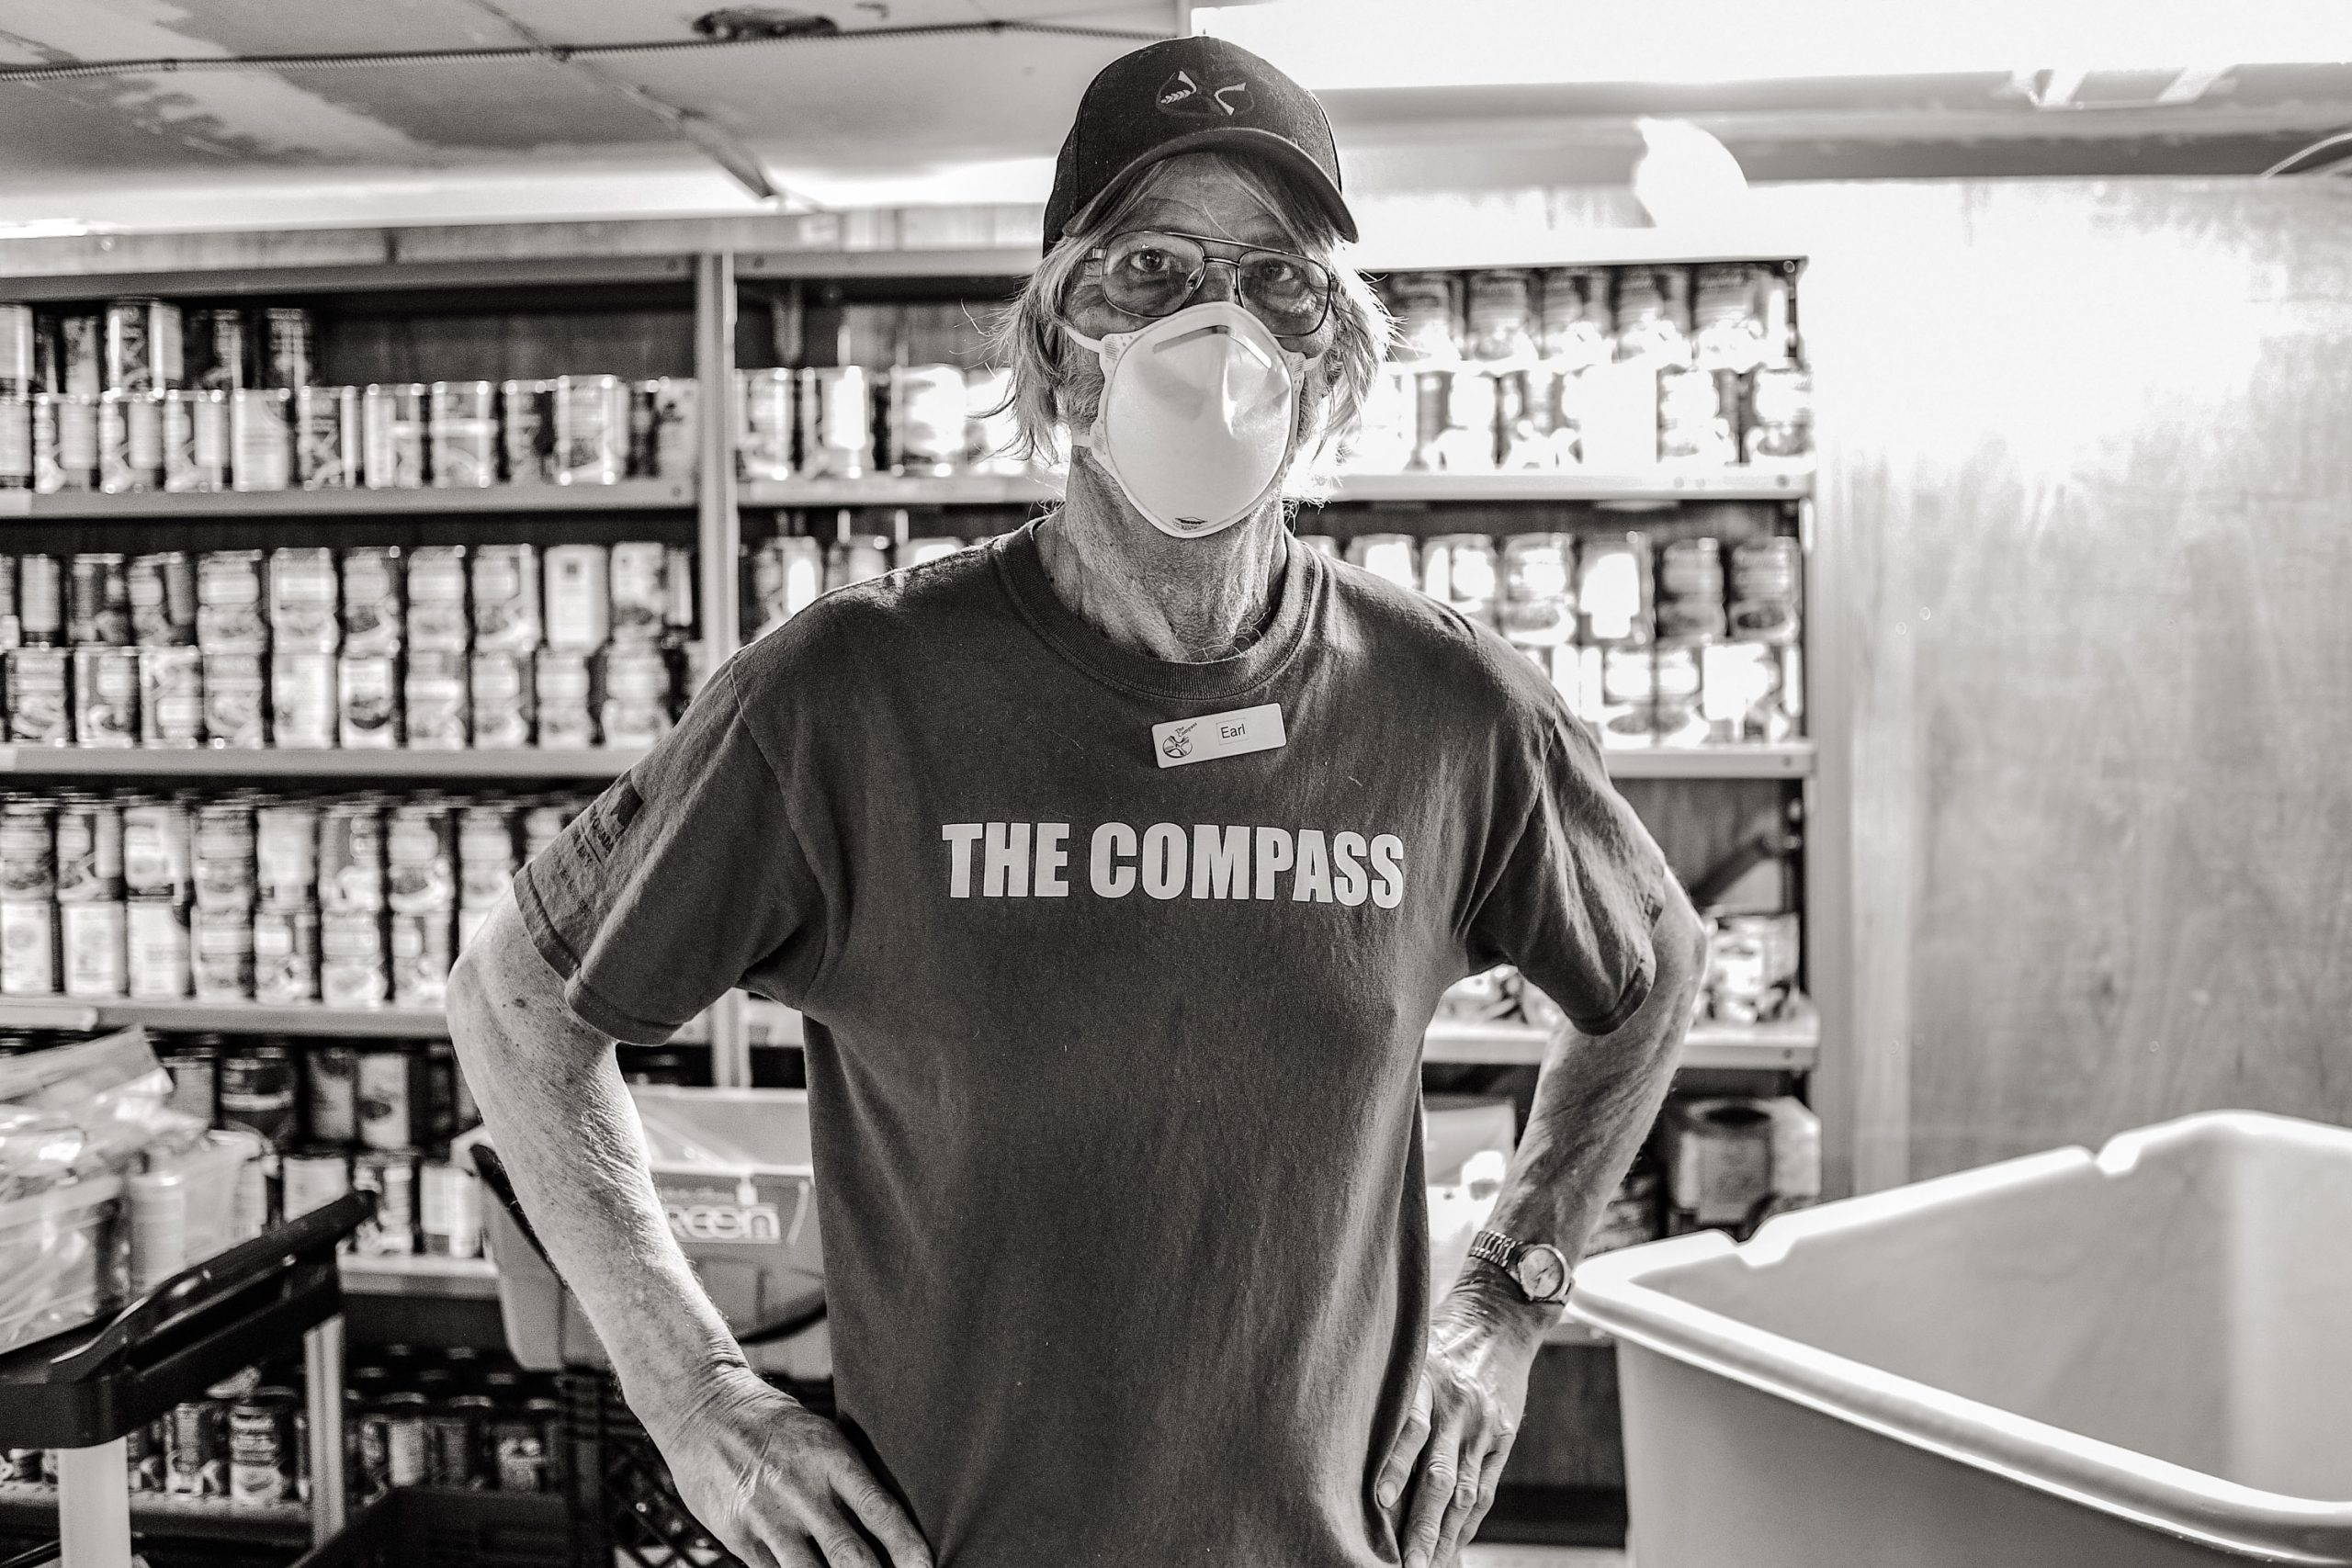 Man in a mask working at The Compass foodbank